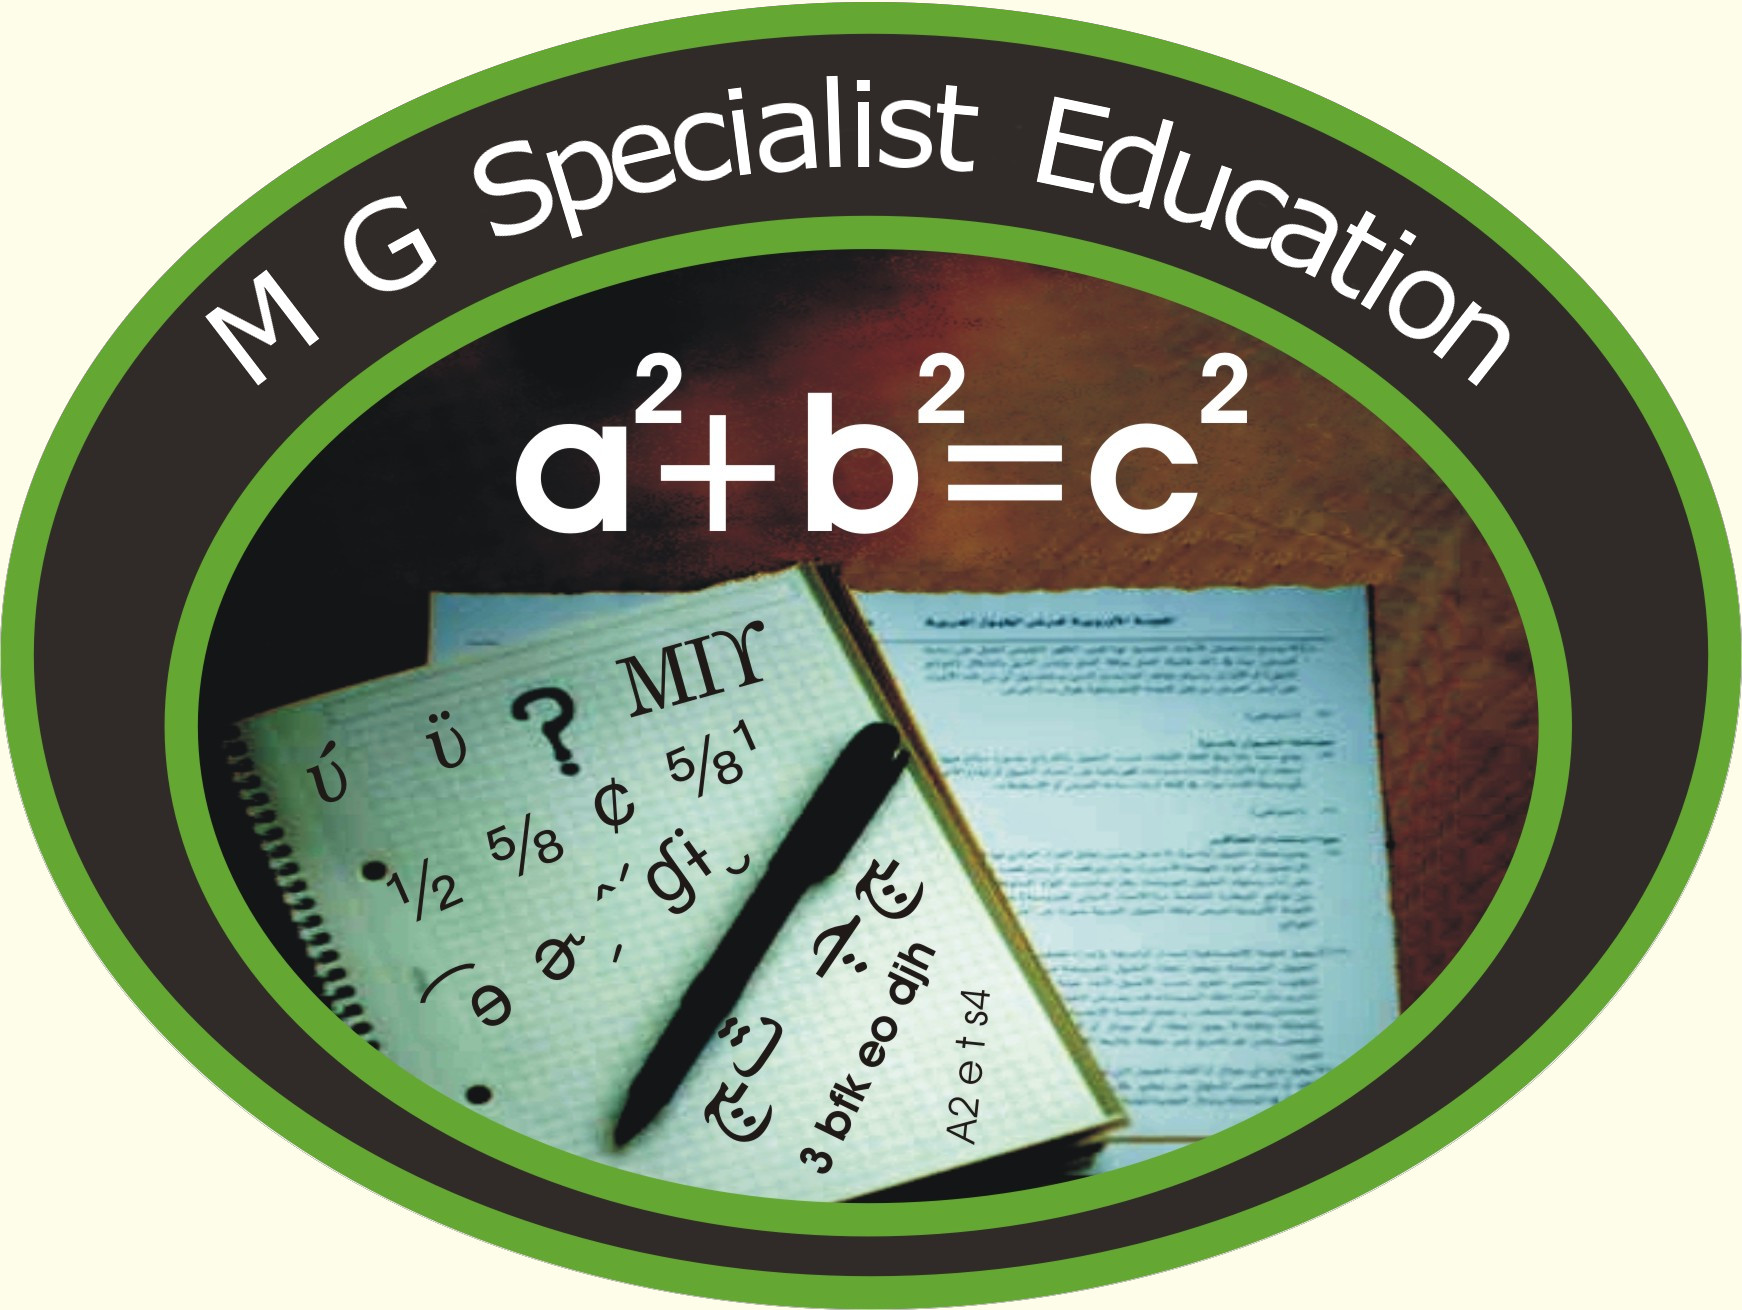 M G Specialist Education